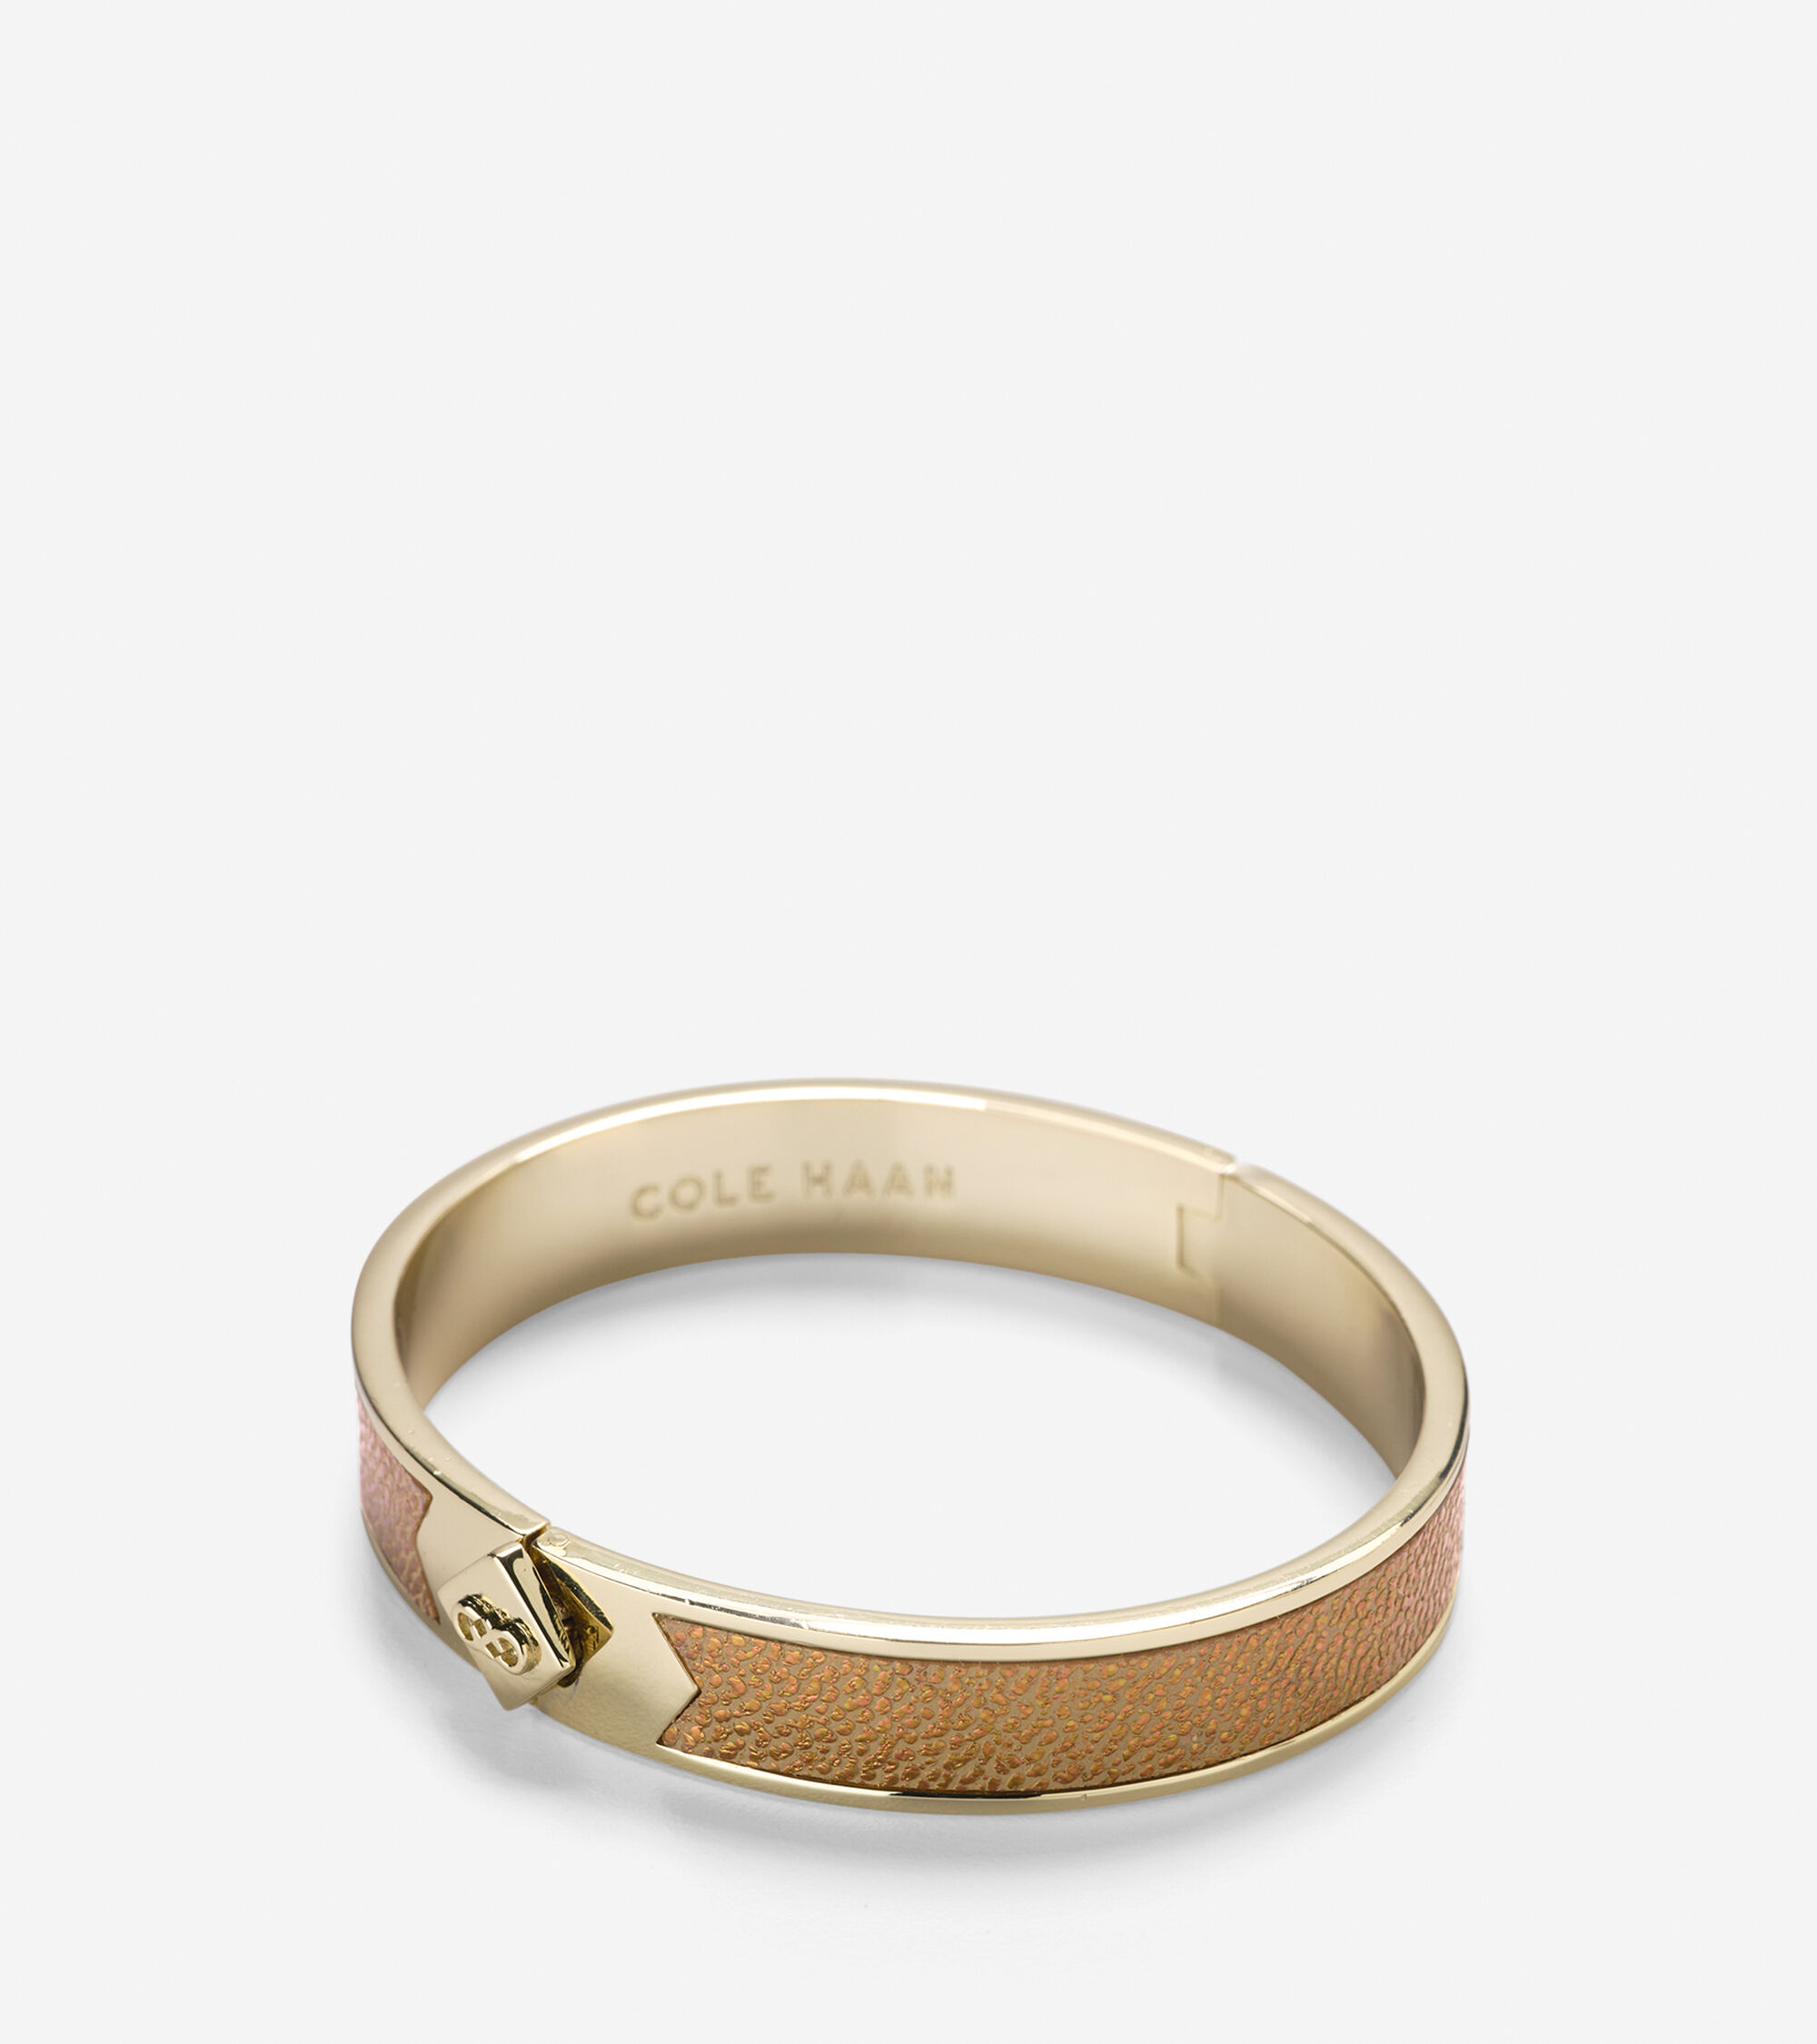 Accessories > Thin Hinged Leather Inlay Bangle